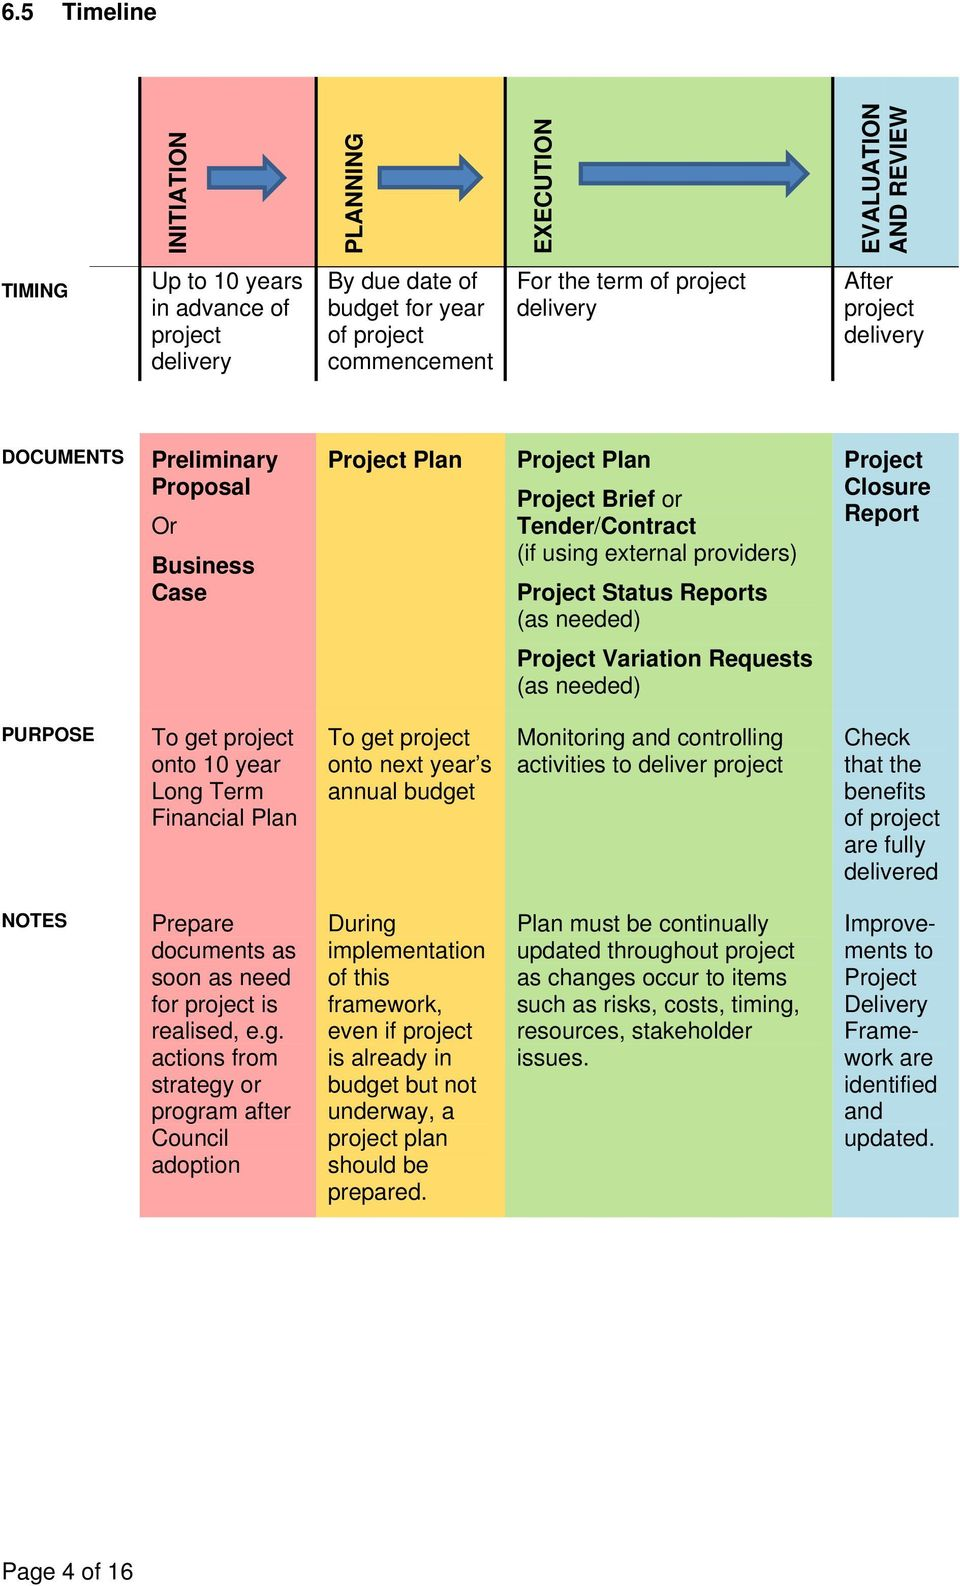 needed) Project Closure Report Project Variation Requests (as needed) PURPOSE To get project onto 10 year Long Term Financial Plan To get project onto next year s annual budget Monitoring and